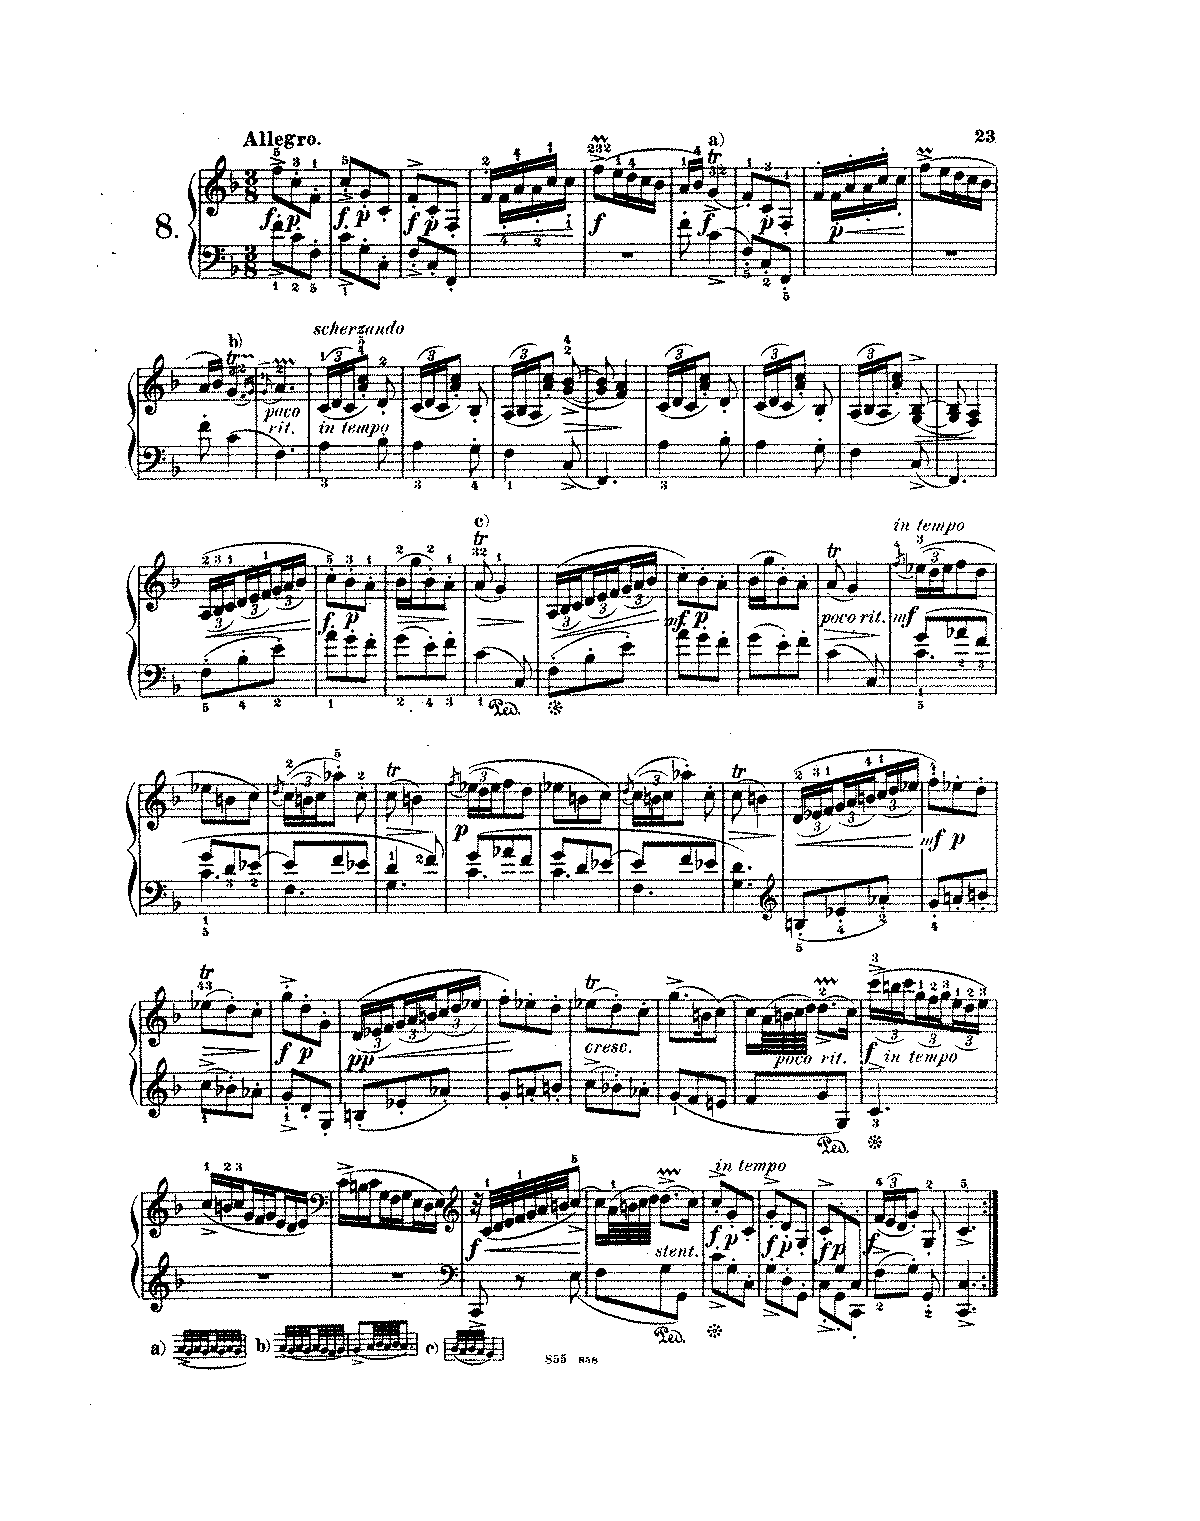 PMLP330535-Sibley1802.22722 - No. 8 - Sonata in F major, K. 17.pdf